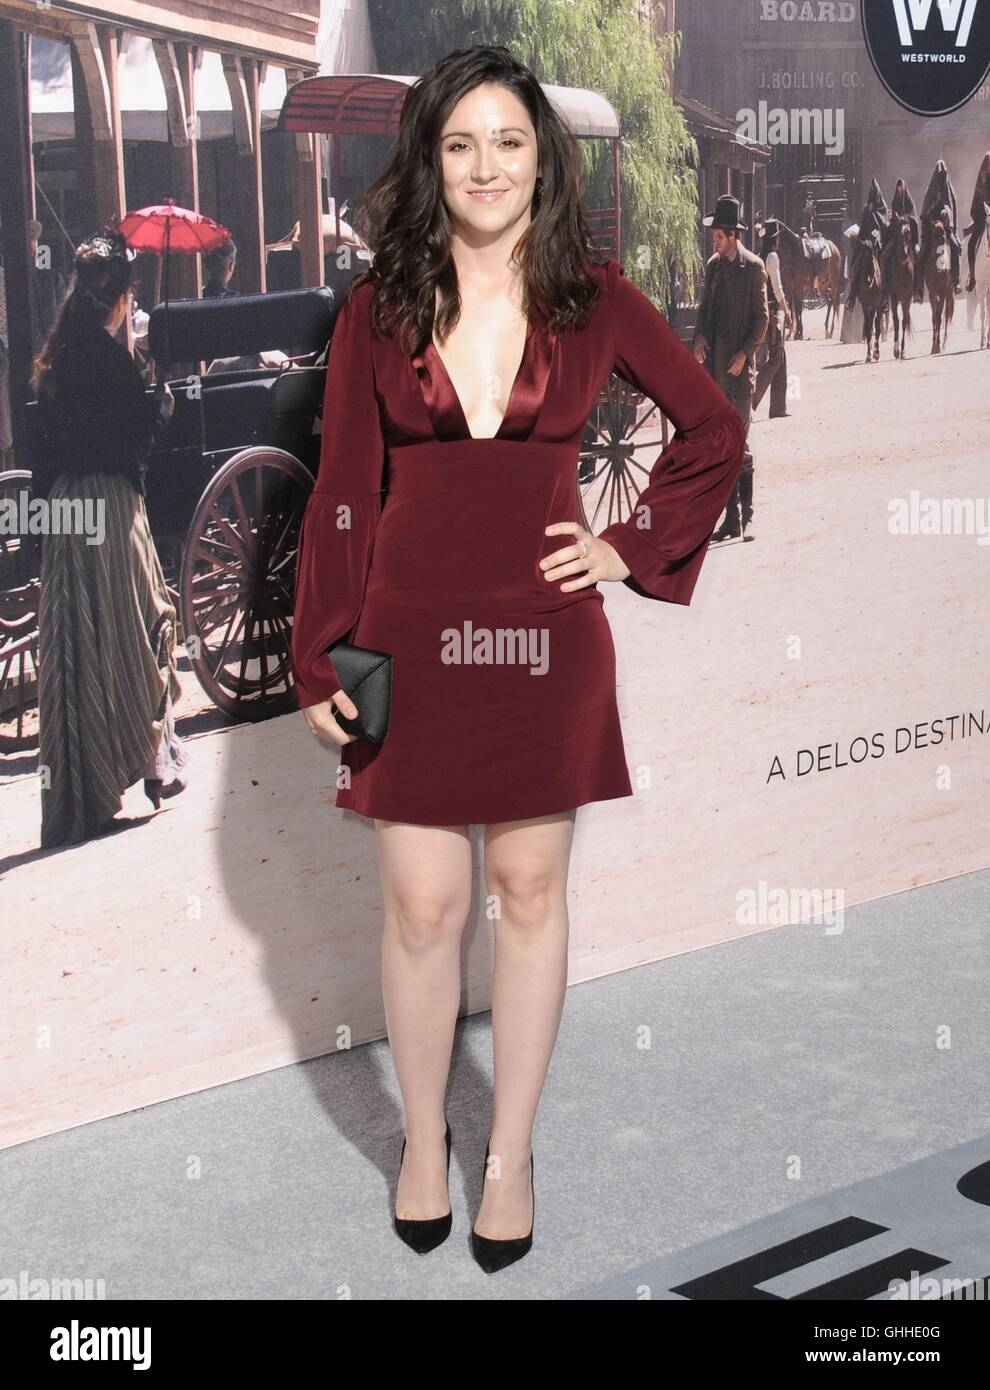 Legs Shannon Woodward nudes (39 images) Paparazzi, Facebook, braless